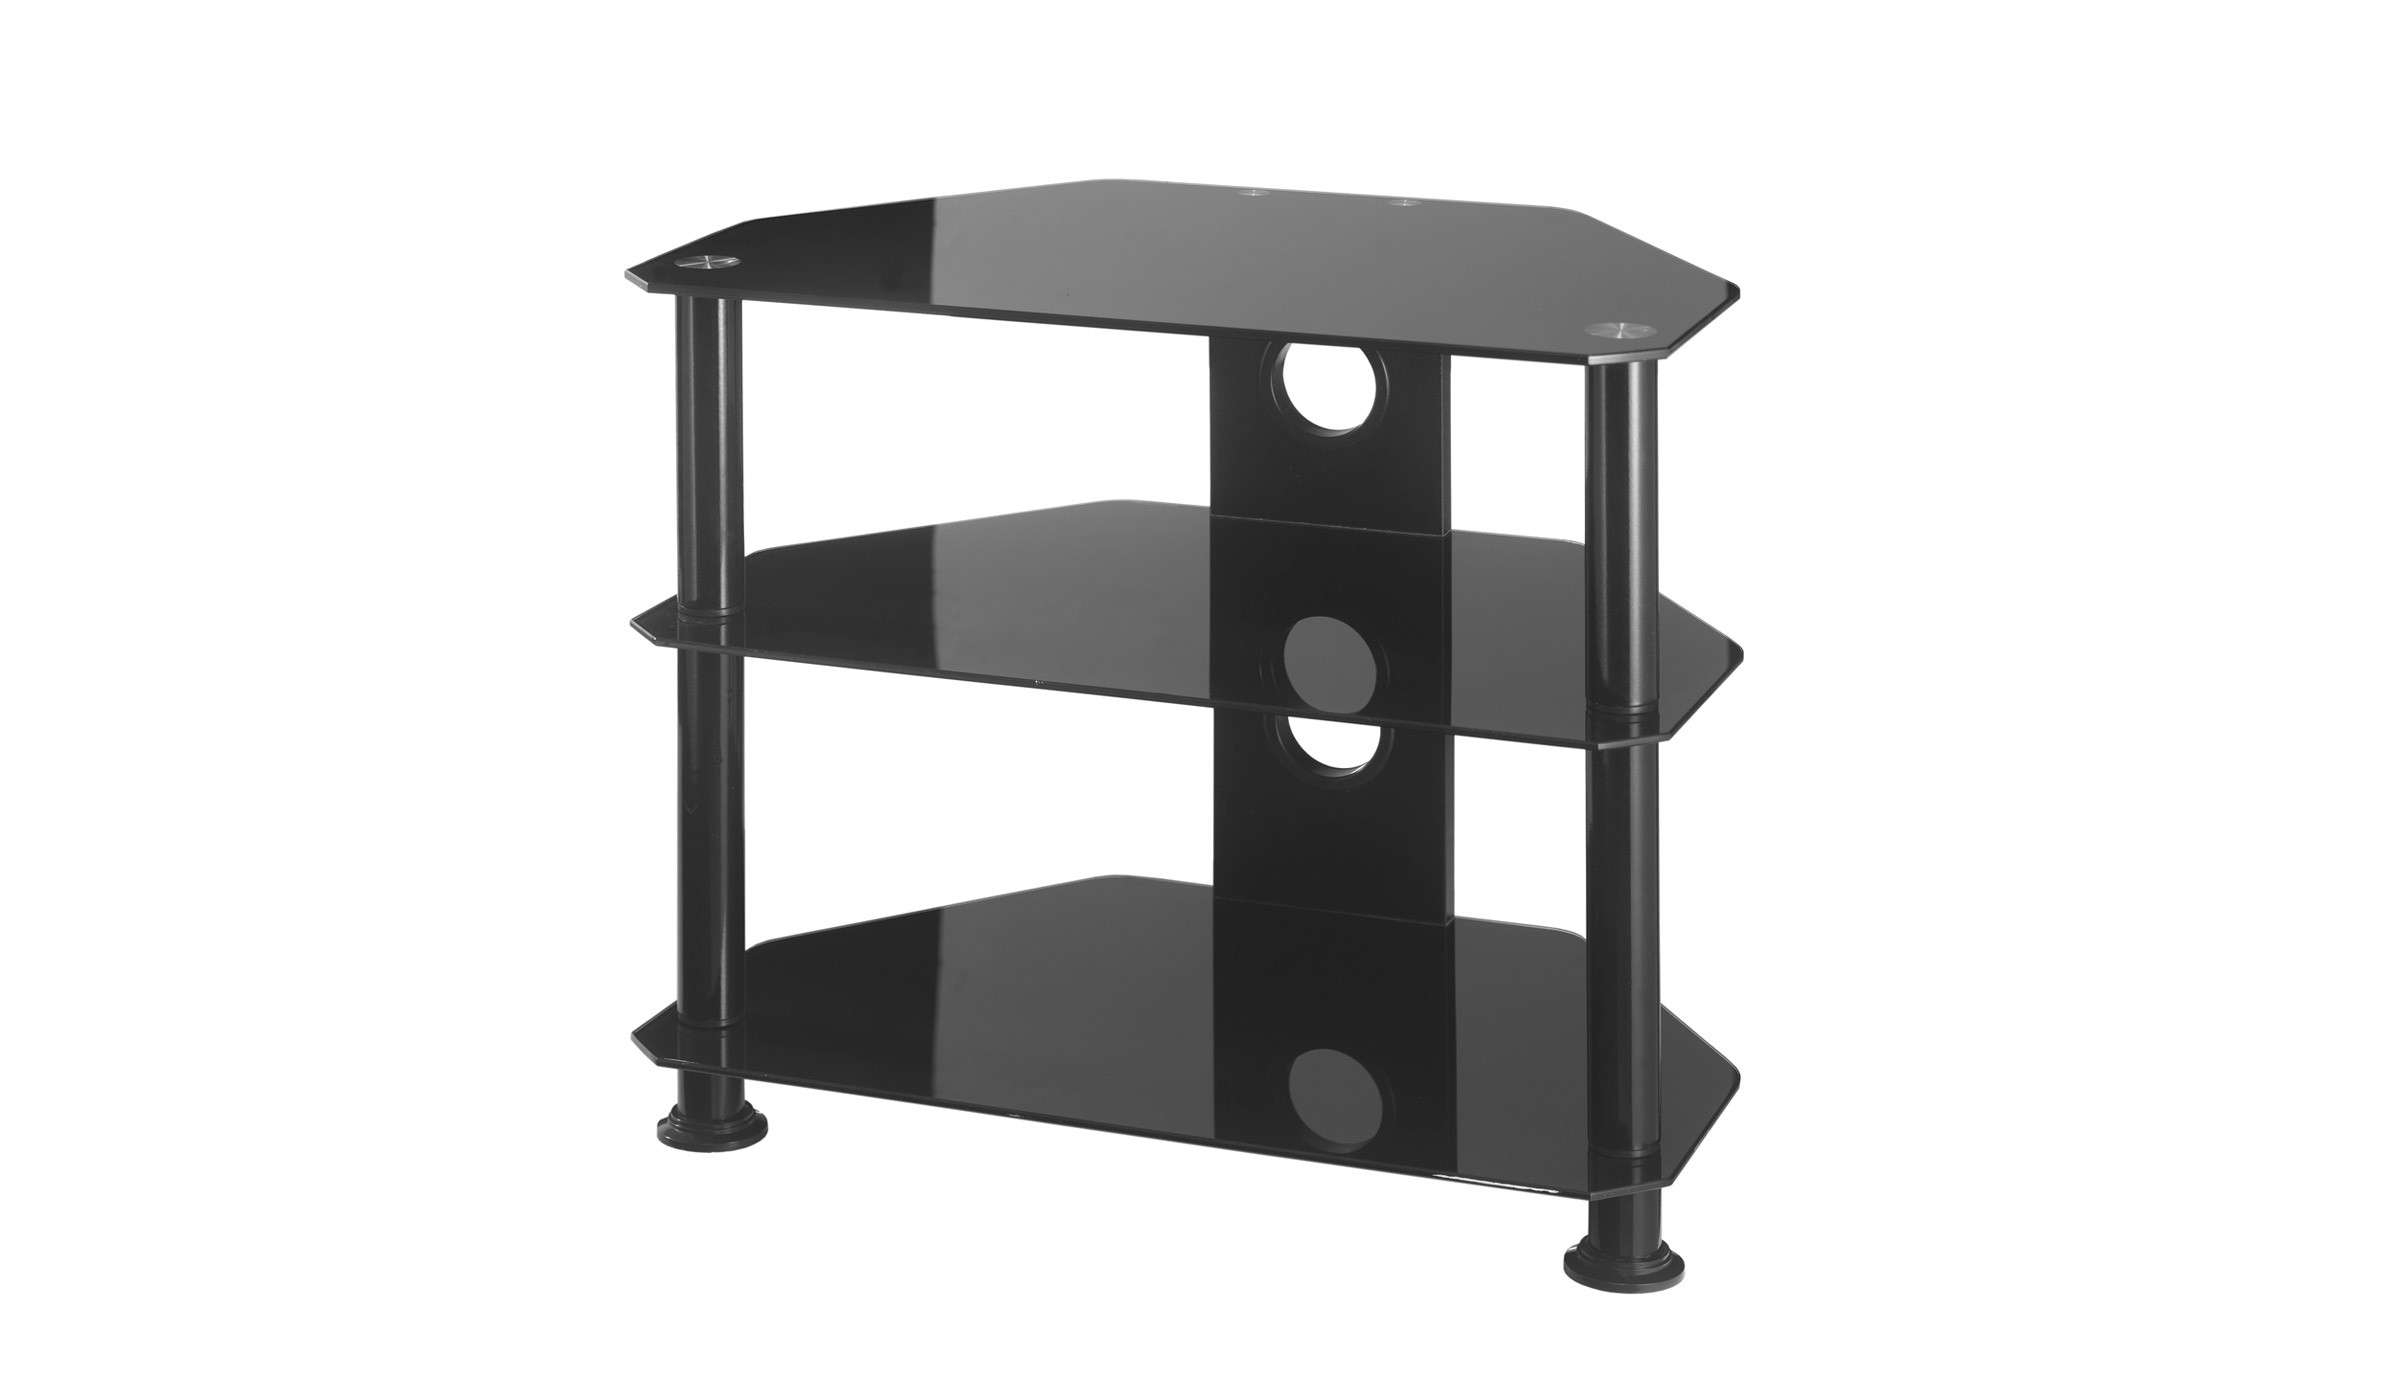 Small Glass Corner Tv Stand Up To 26 Inch Tv | Mmt Db600 Inside White Cantilever Tv Stands (View 18 of 20)